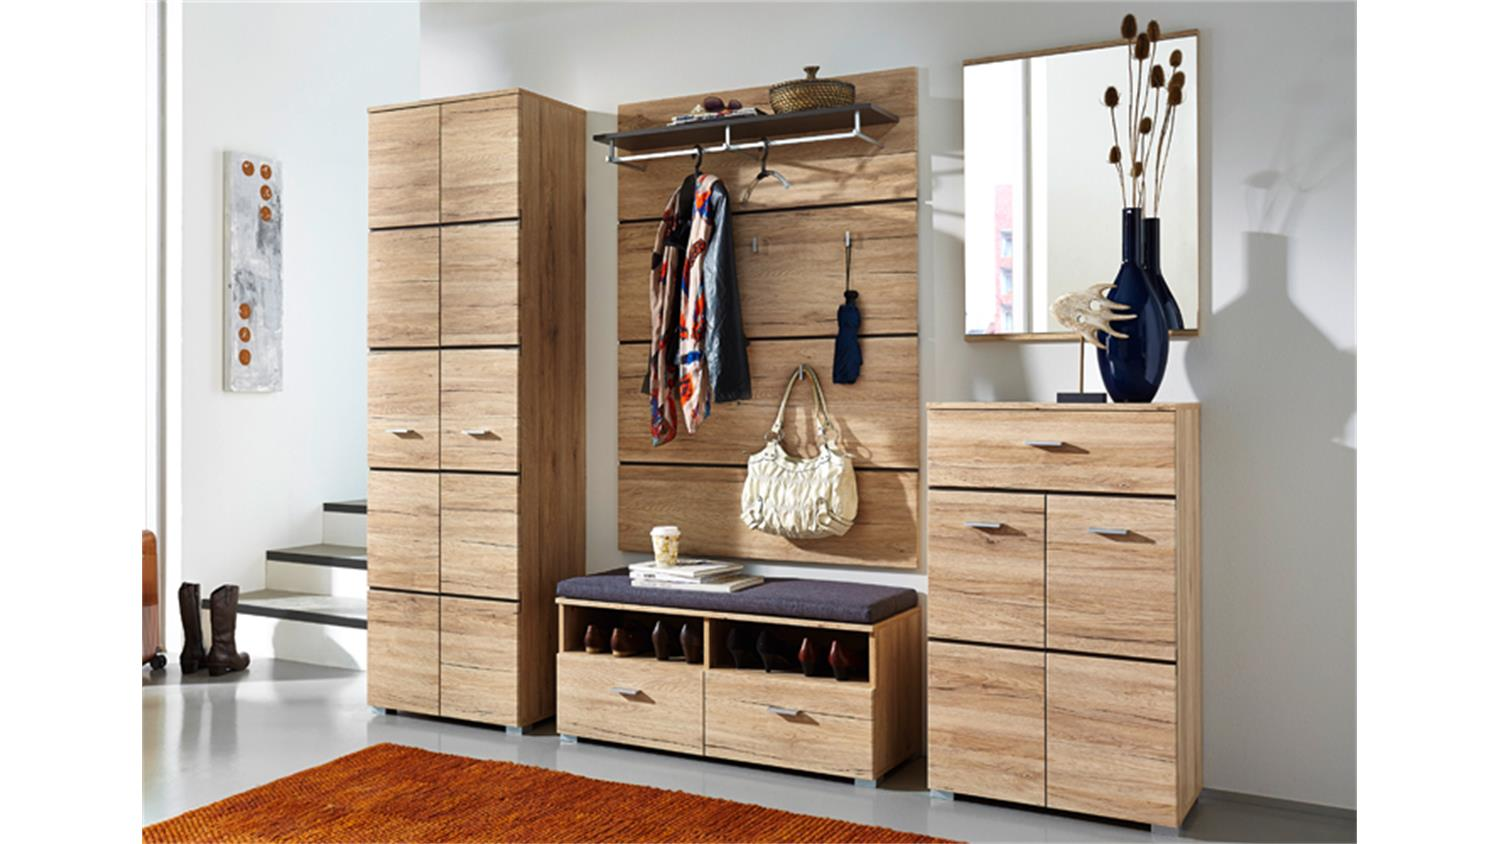 spiegel garderobe fresh san remo eiche hell. Black Bedroom Furniture Sets. Home Design Ideas